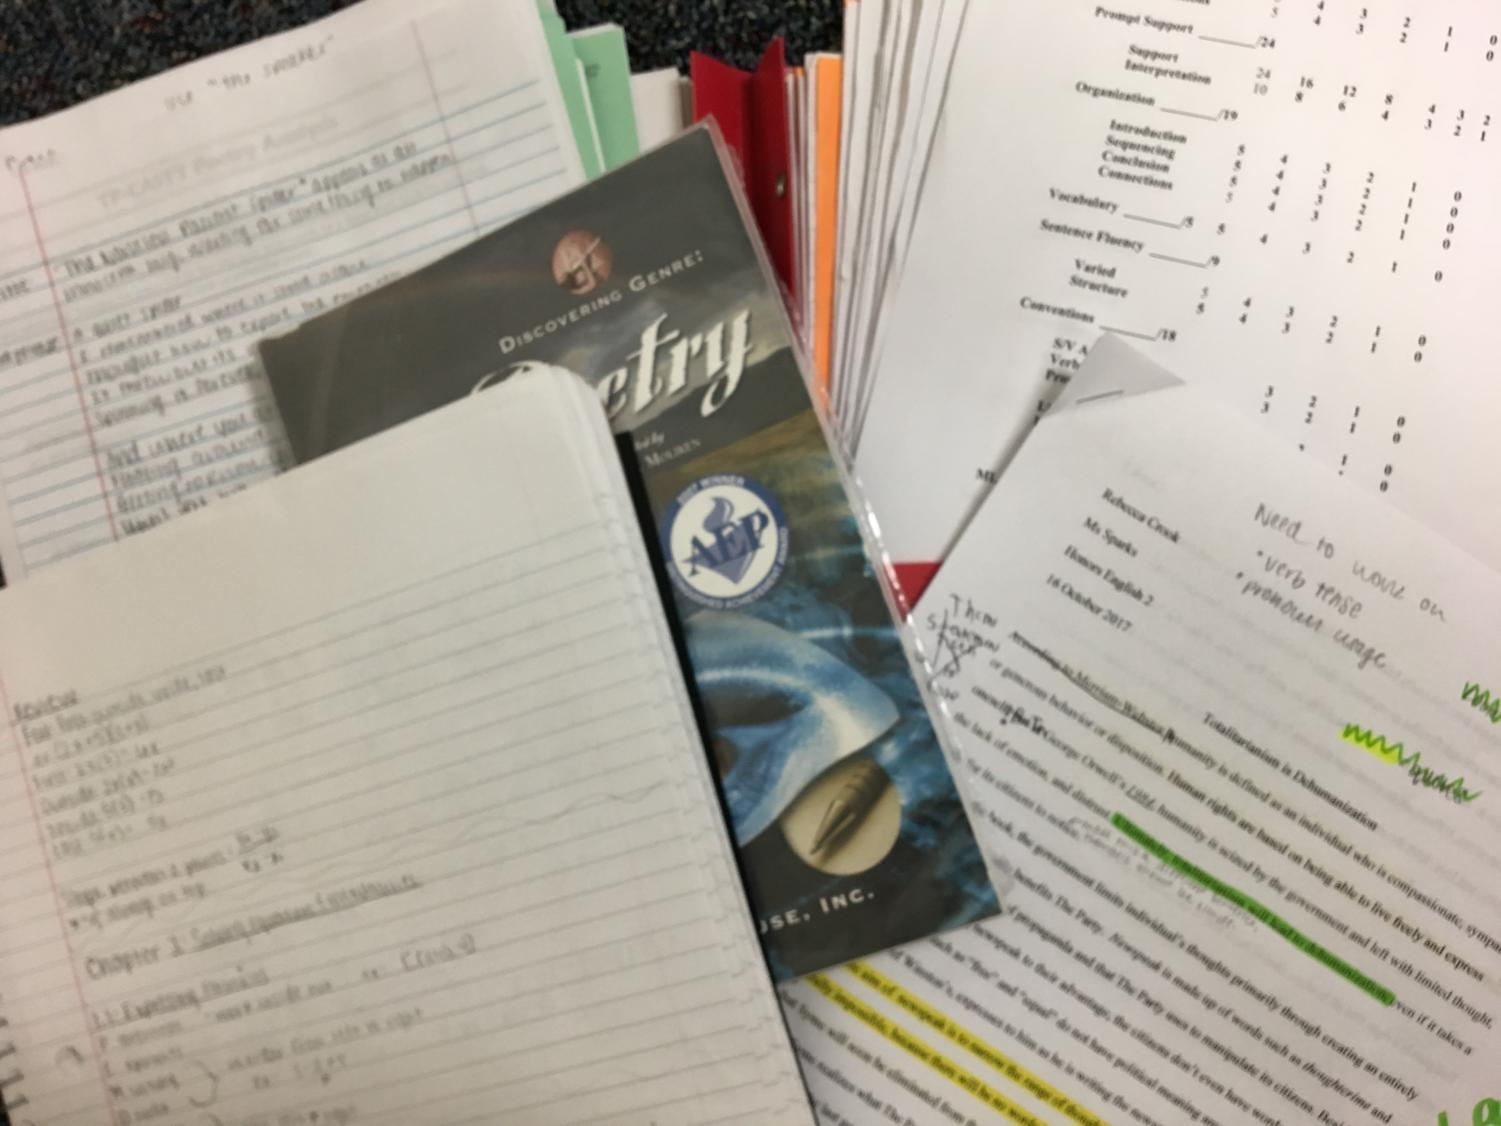 High school students are slammed with hours of homework every night with assignments like reading poetry and solving difficult math problems.